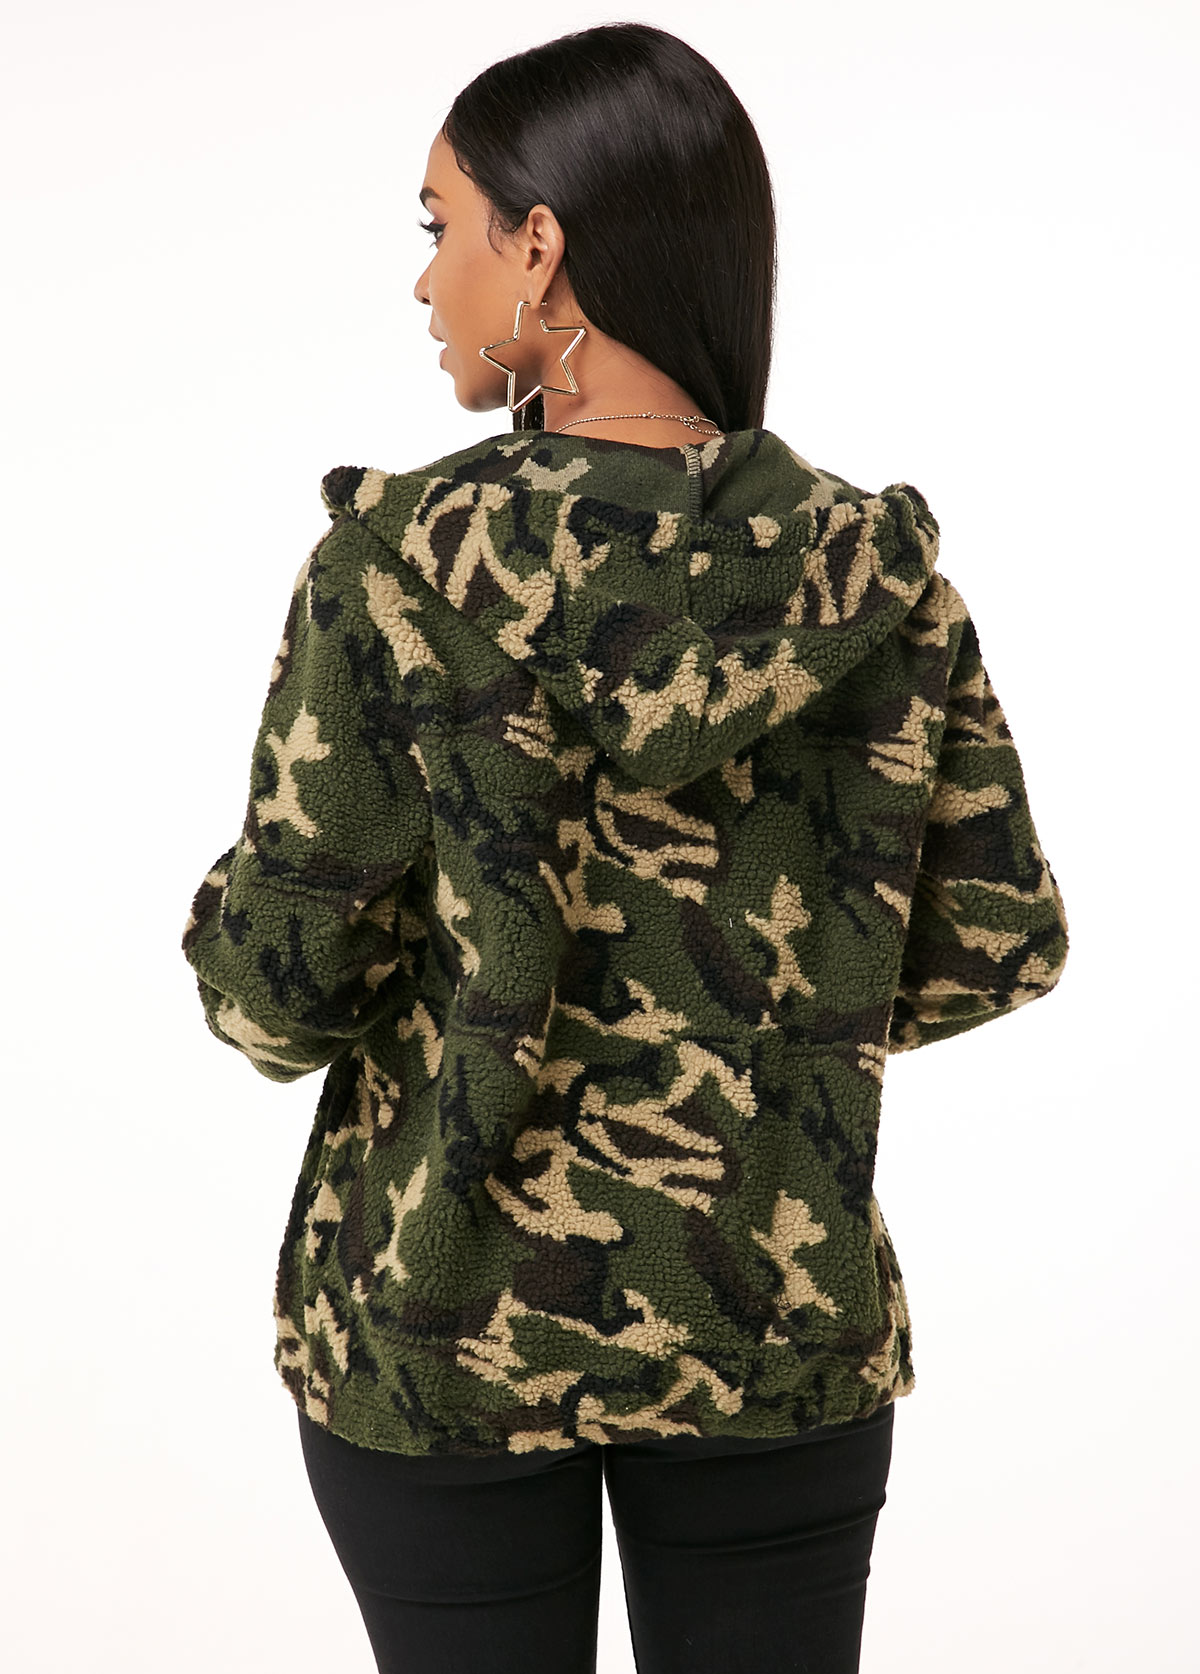 Hooded Collar Zipper Closure Camouflage Print Fluffy Jacket